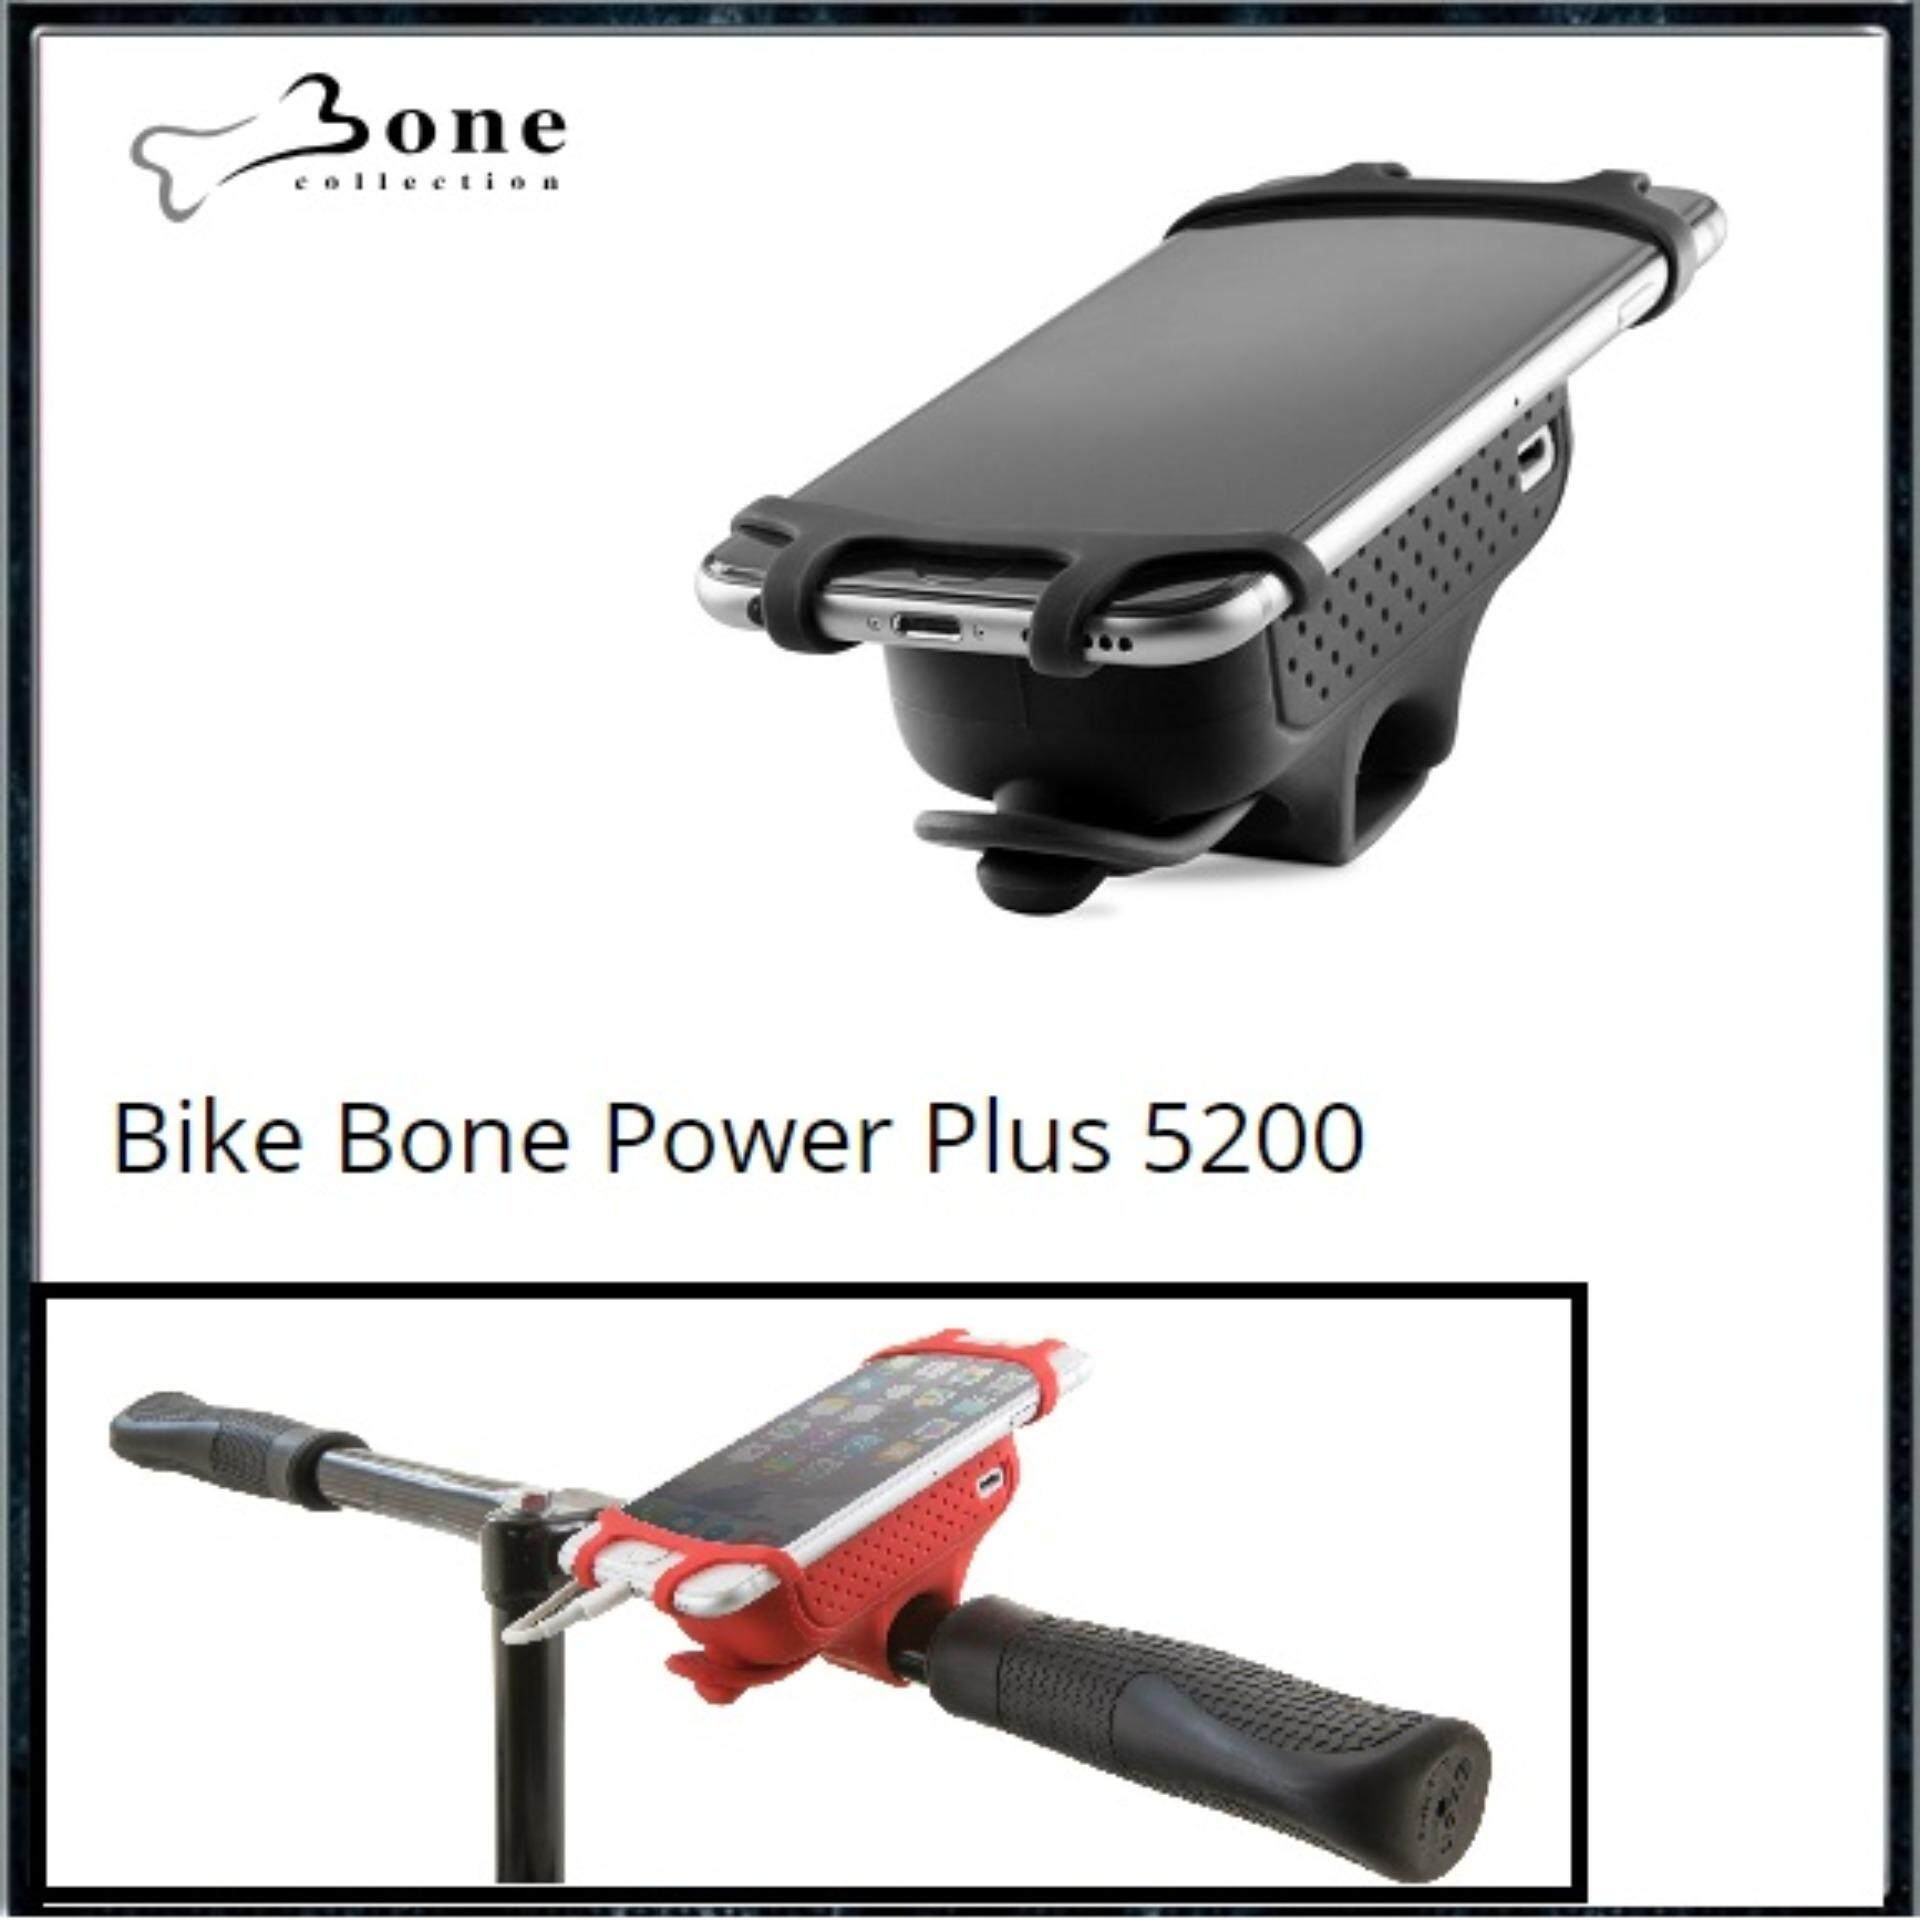 Bone Collection Bicycle Power Bank 5200 mAh